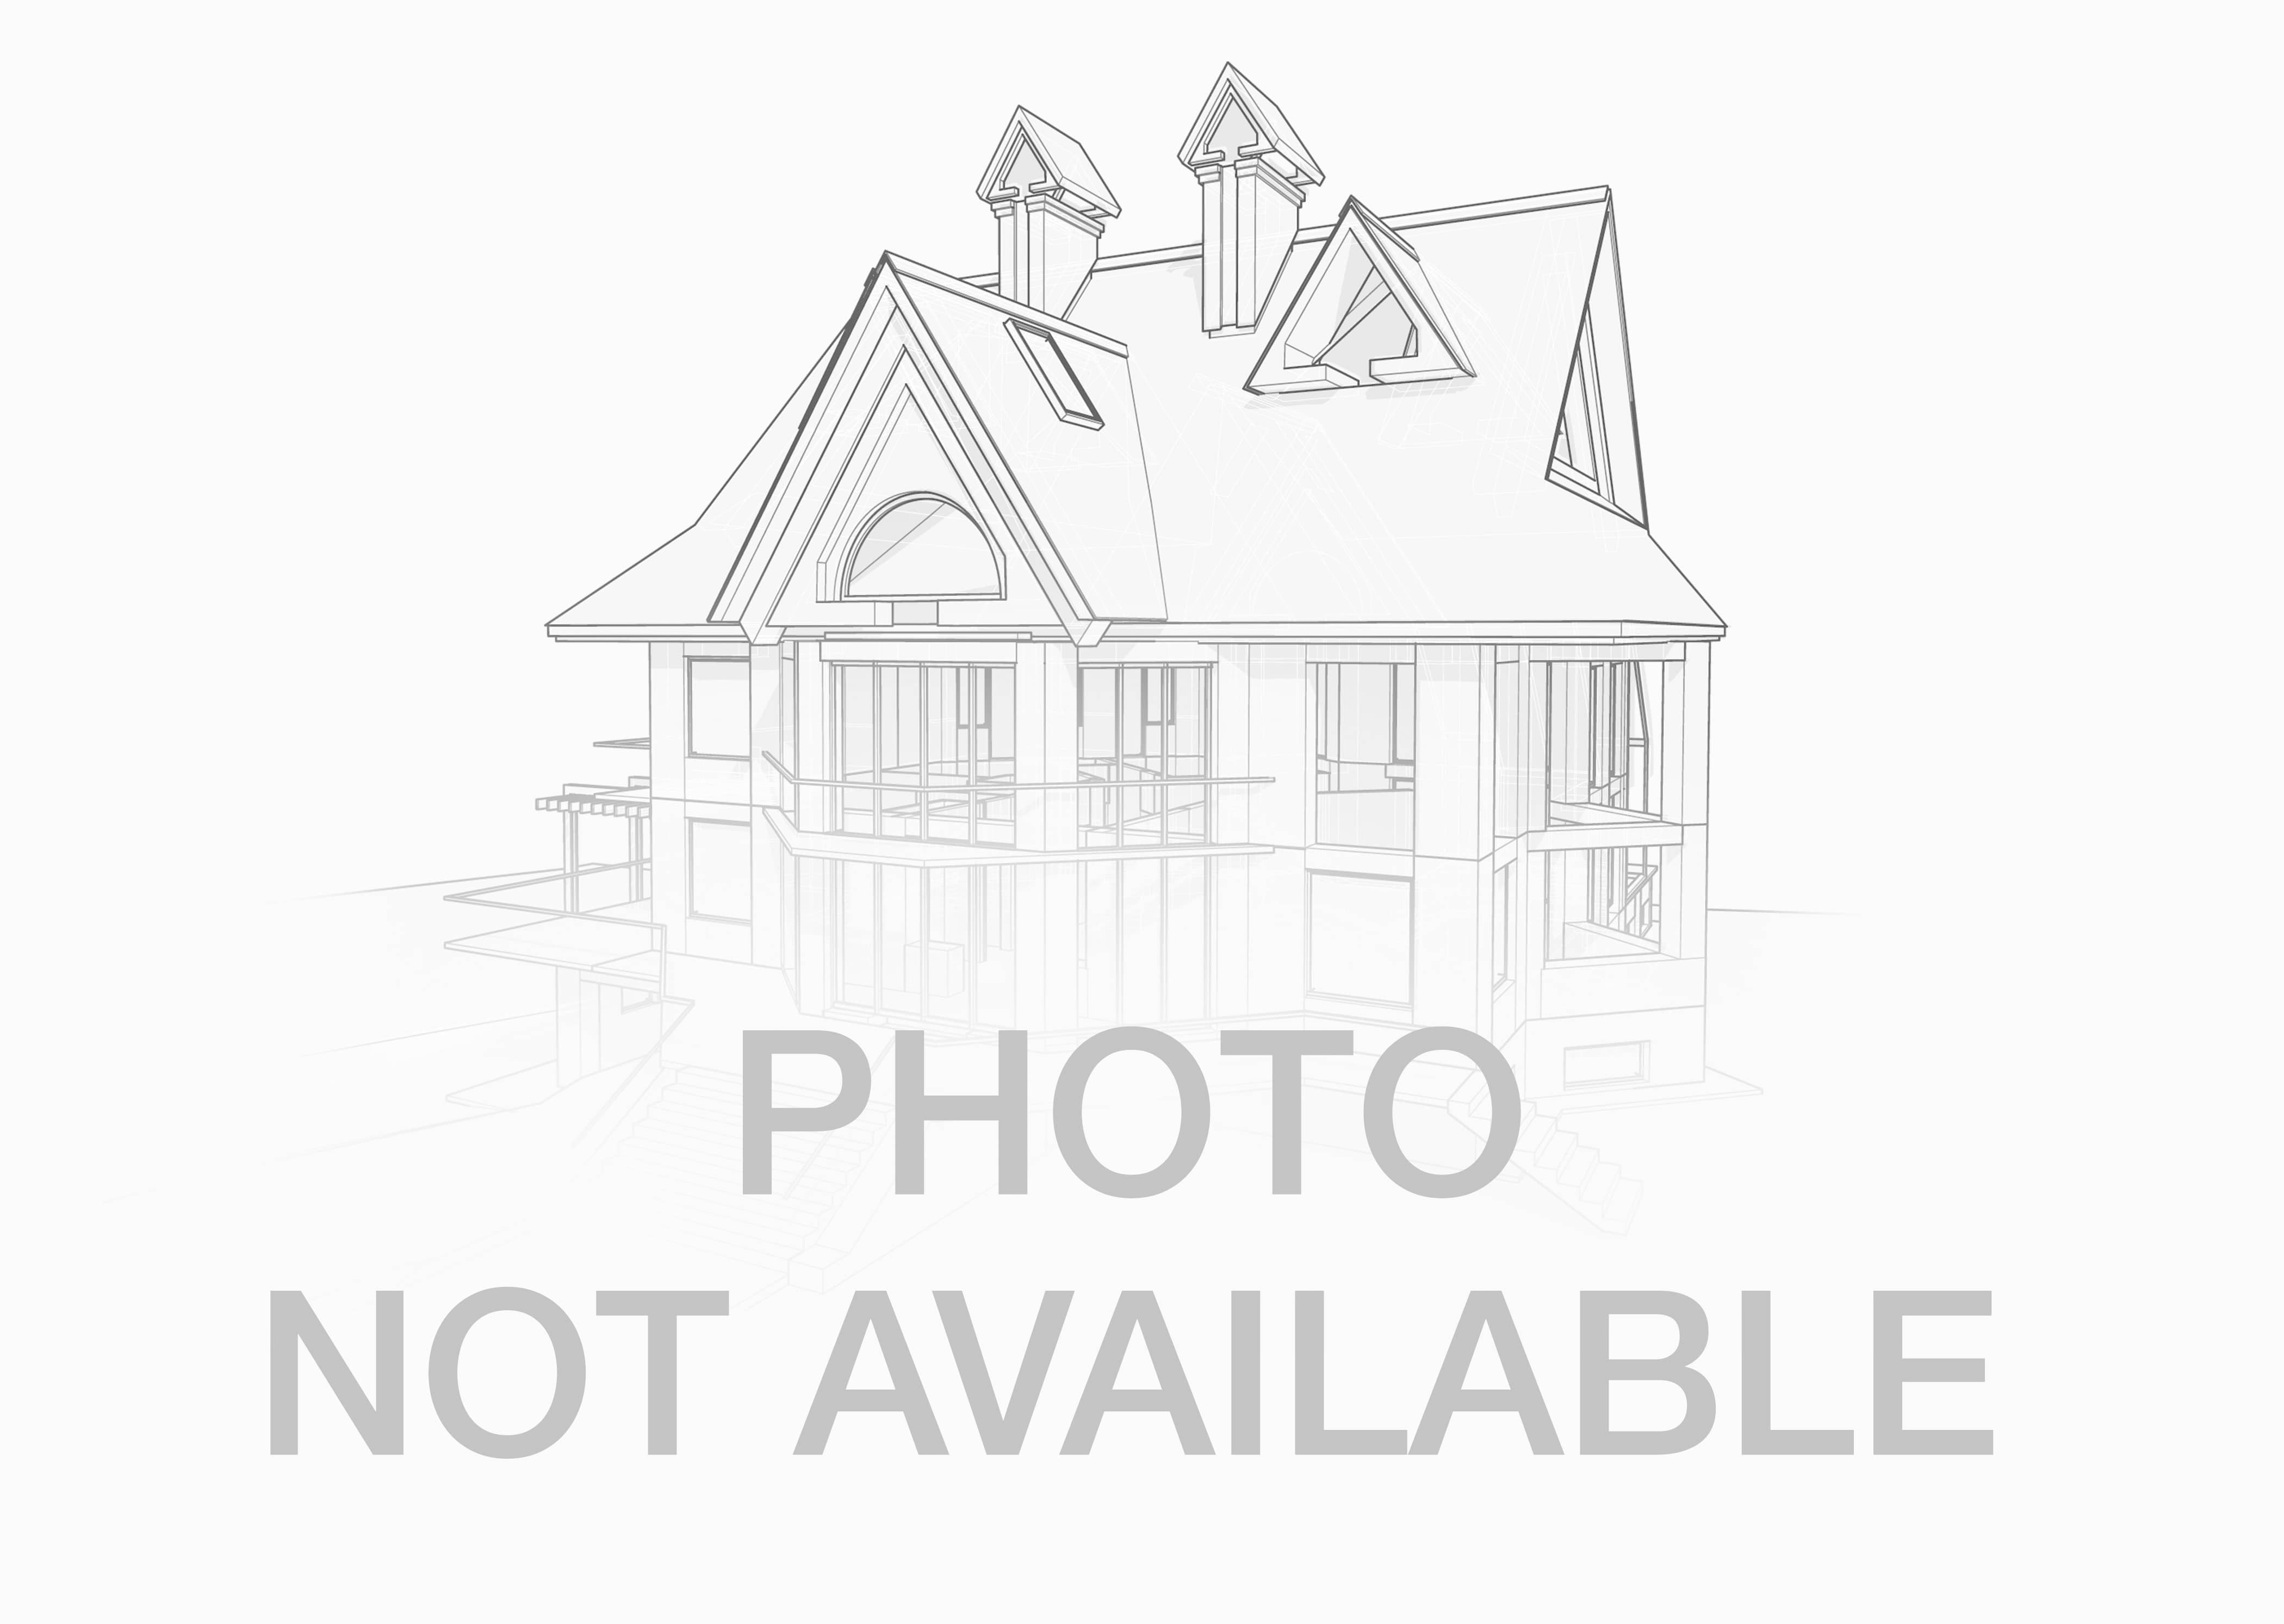 indiana real estate properties for sale indiana real estate rh susietucker com